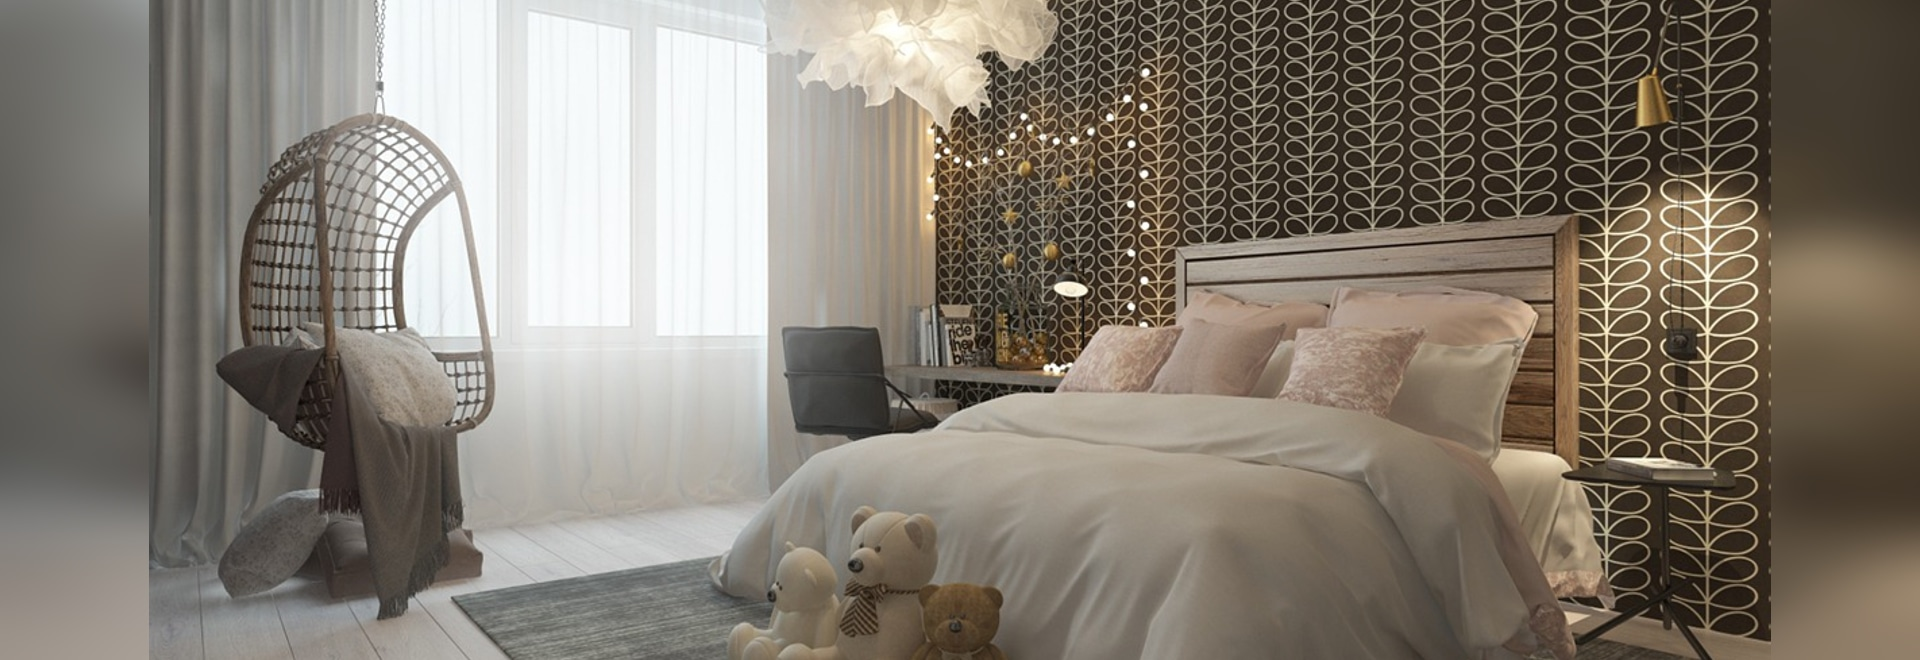 Sophisticated Bedroom A Pair Of Childrens Bedrooms With Sophisticated Themes Russia